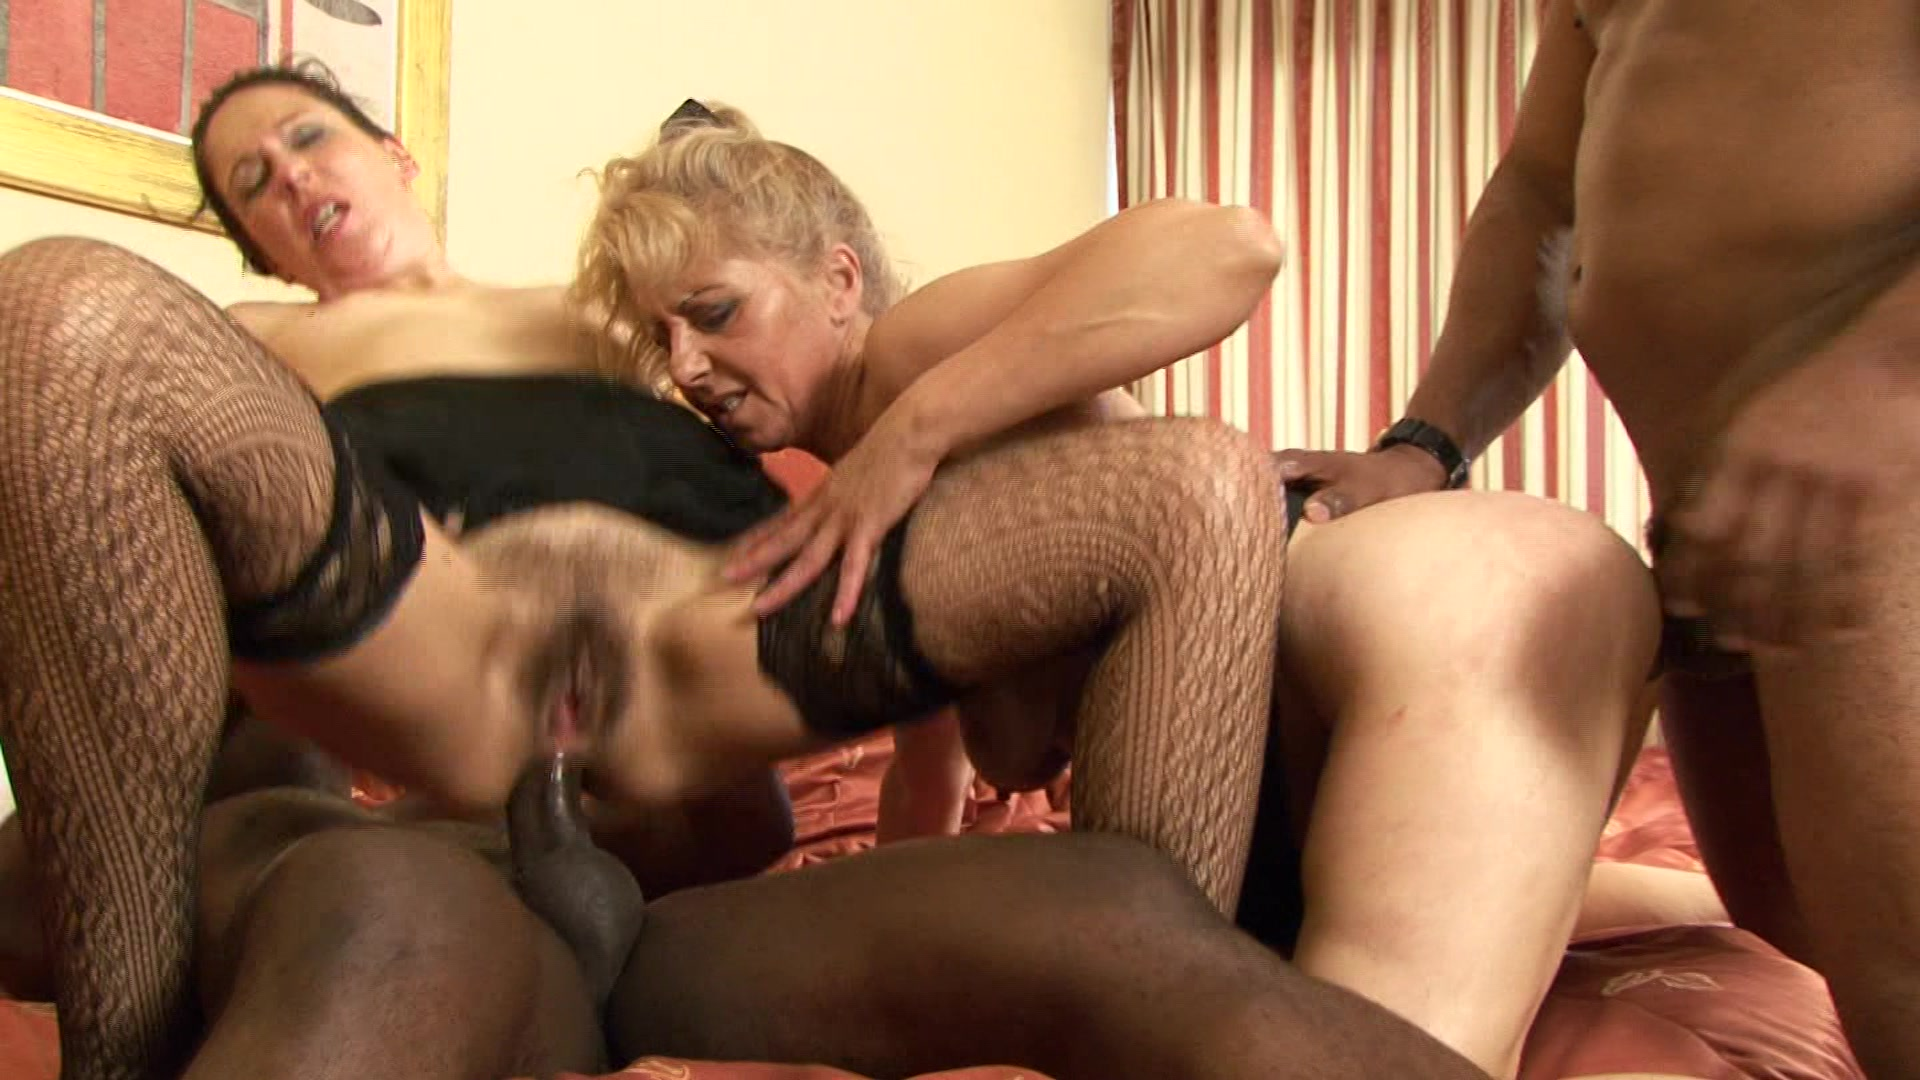 Druck recommend White girls deep throtting black cock